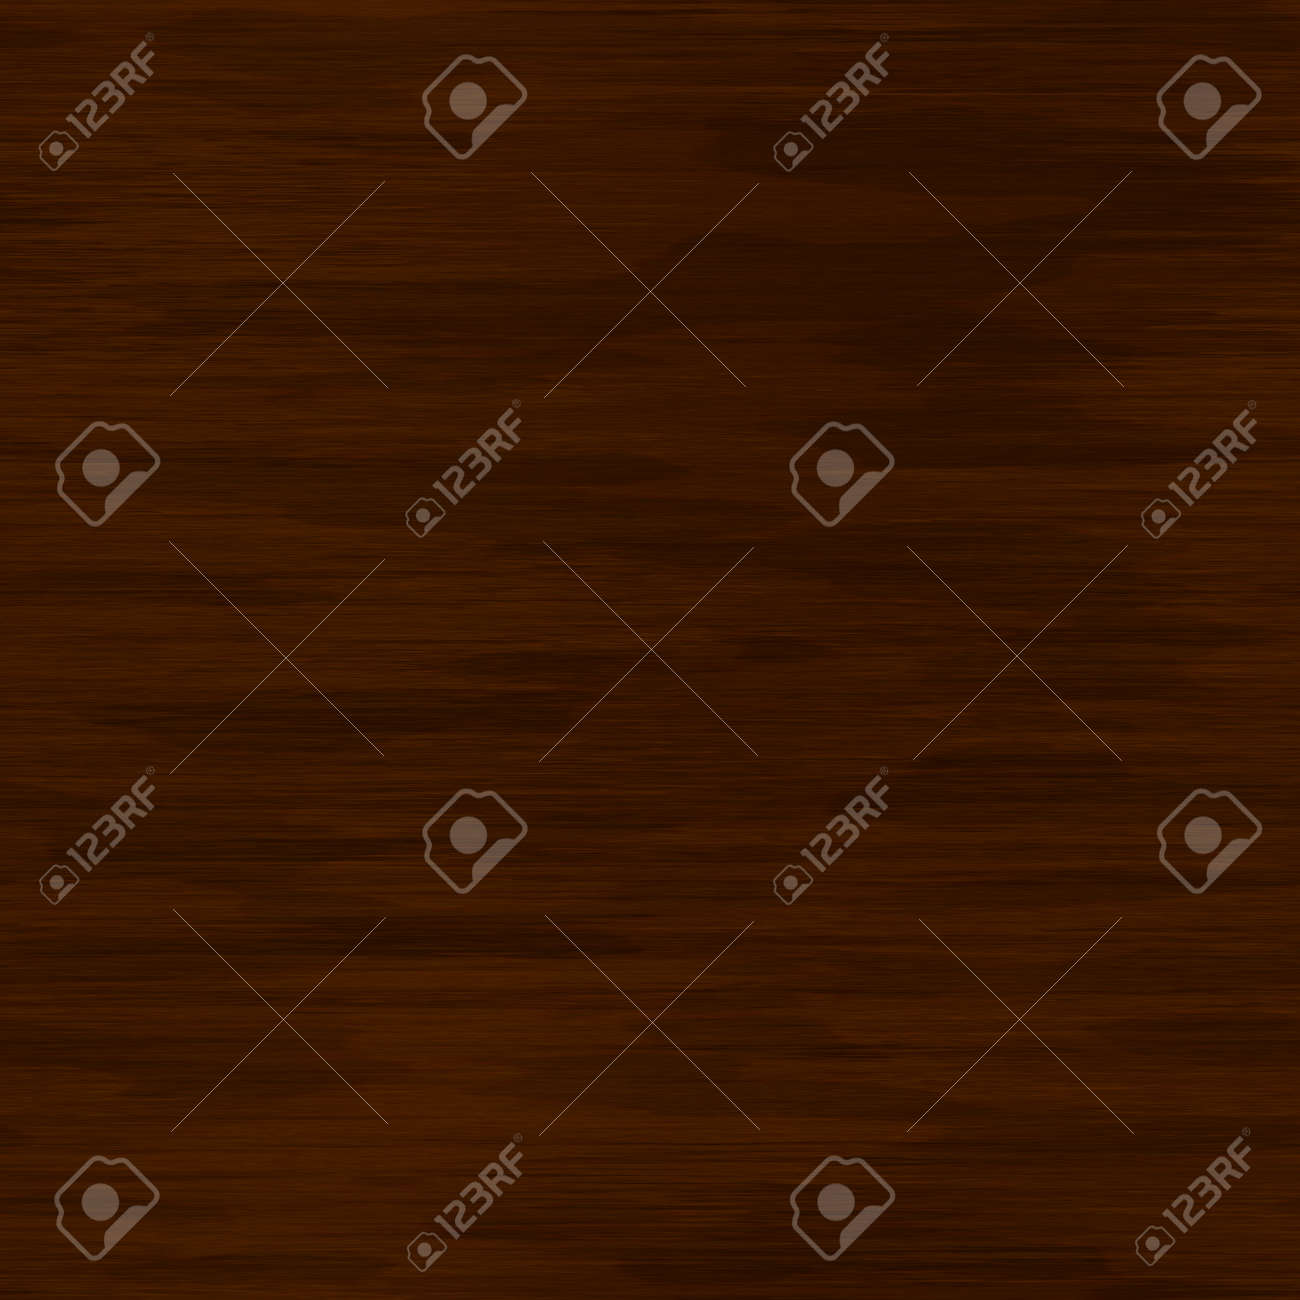 High quality high resolution seamless wood texture dark hardwood high quality high resolution seamless wood texture dark hardwood part of parquet wooden striped voltagebd Choice Image